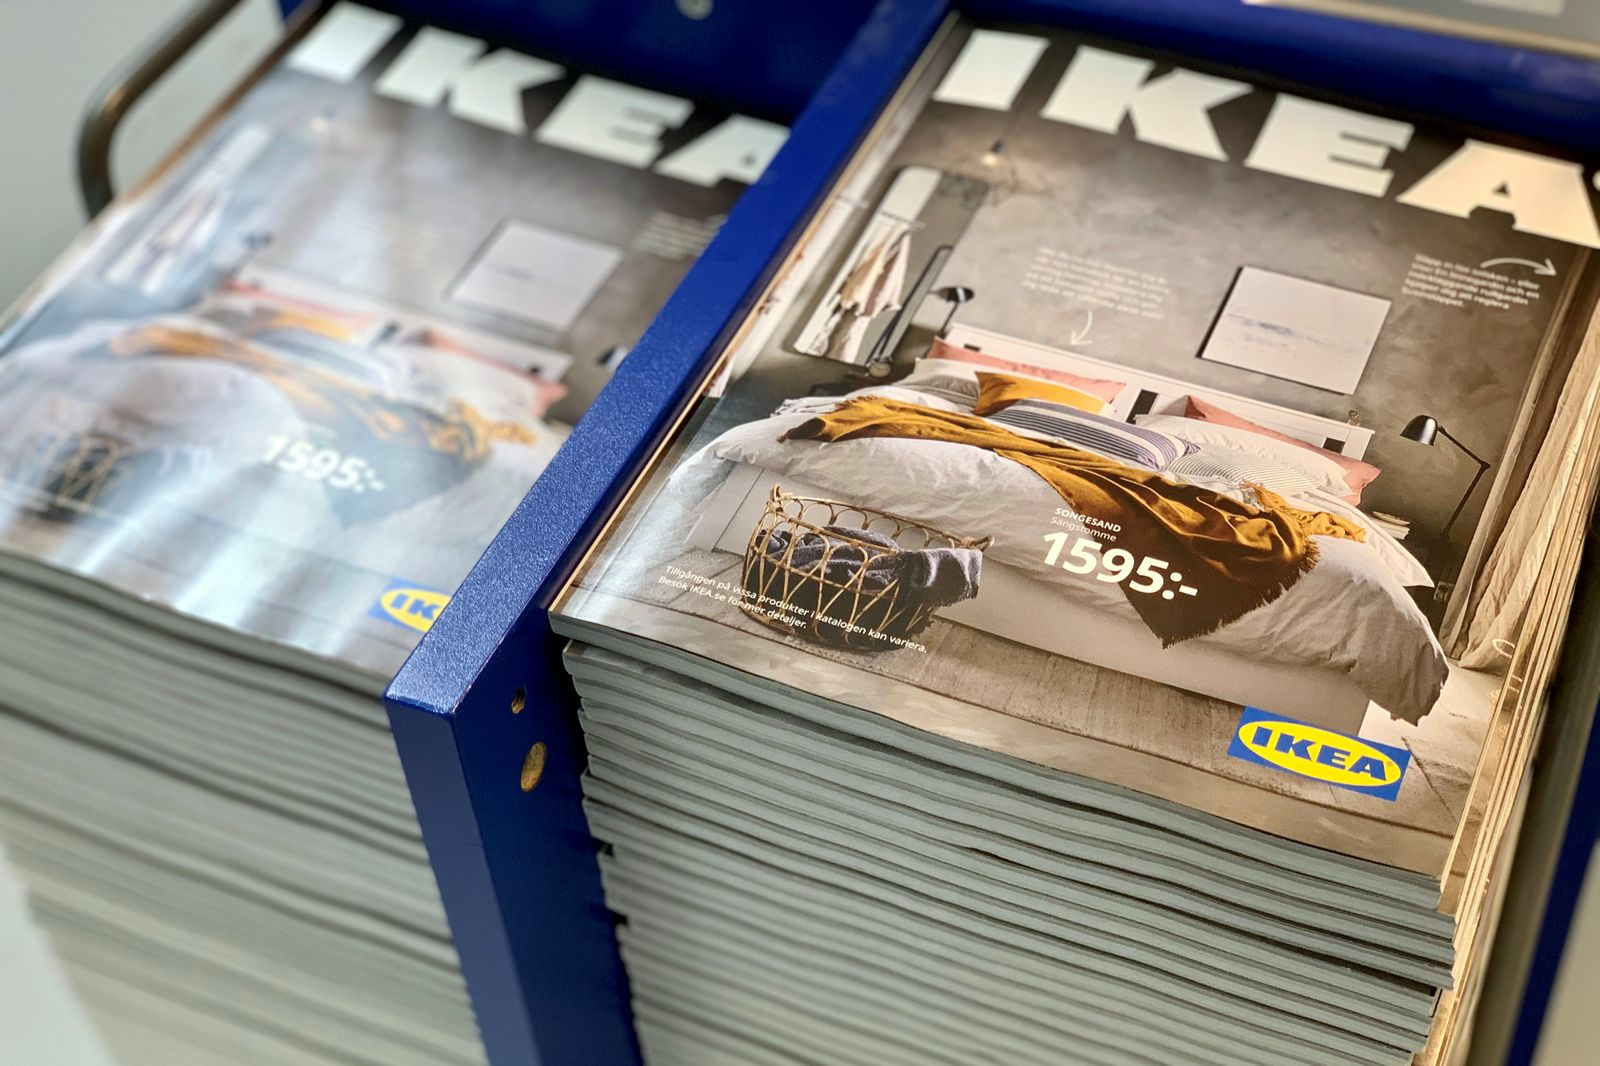 Stacks of IKEA catalogues on outskirts of Stockholm